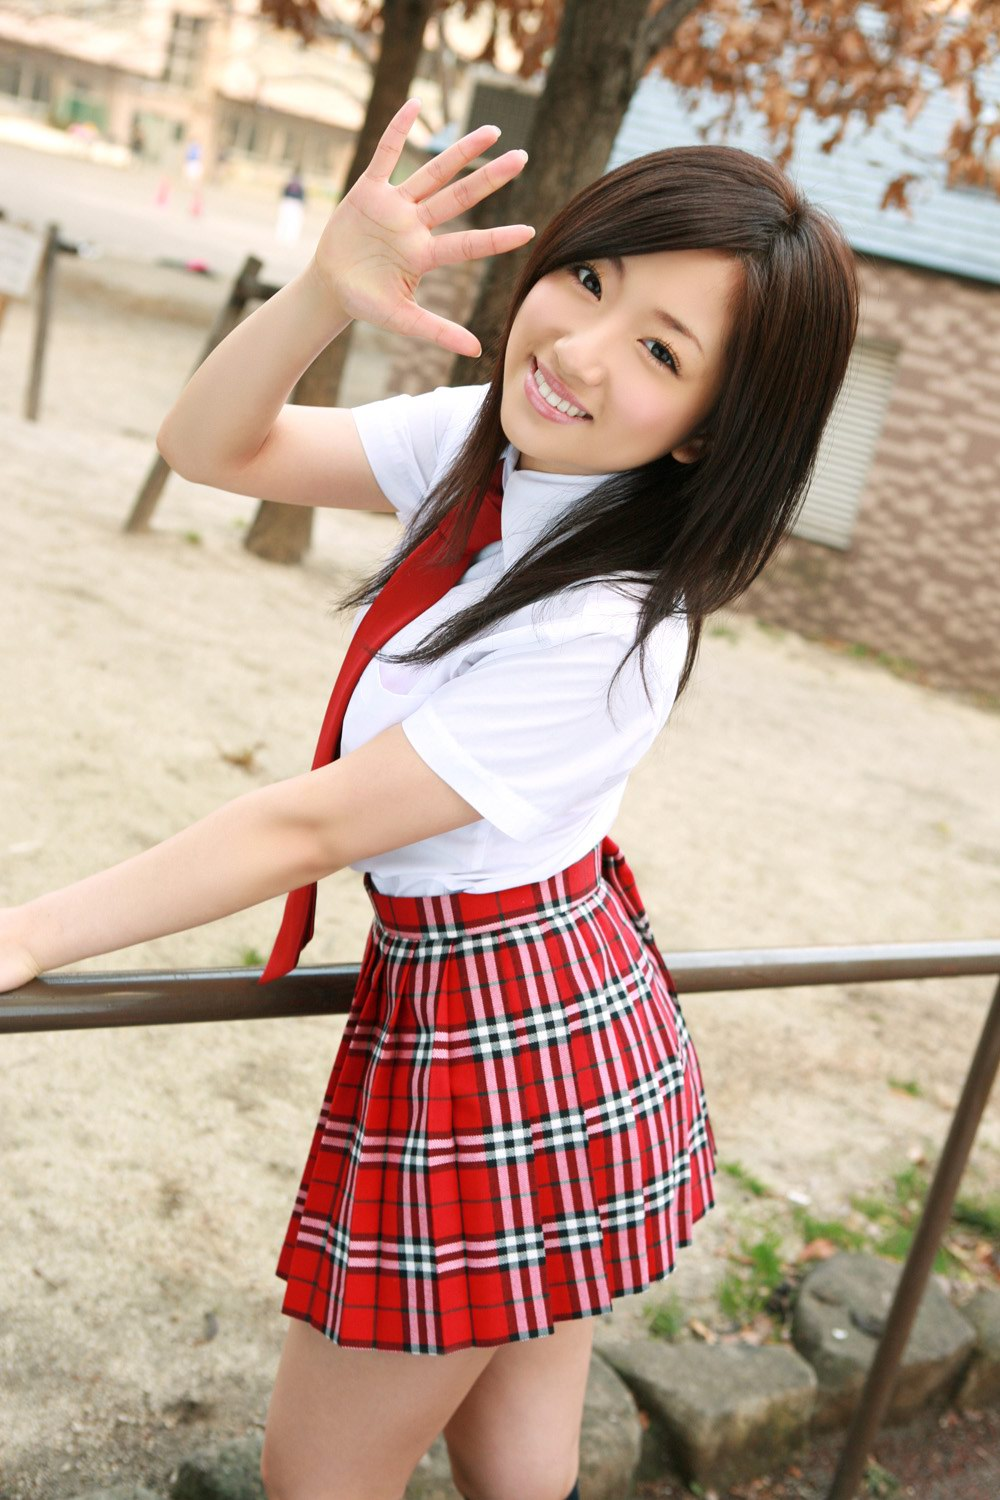 Time become pretty asian school girls share your